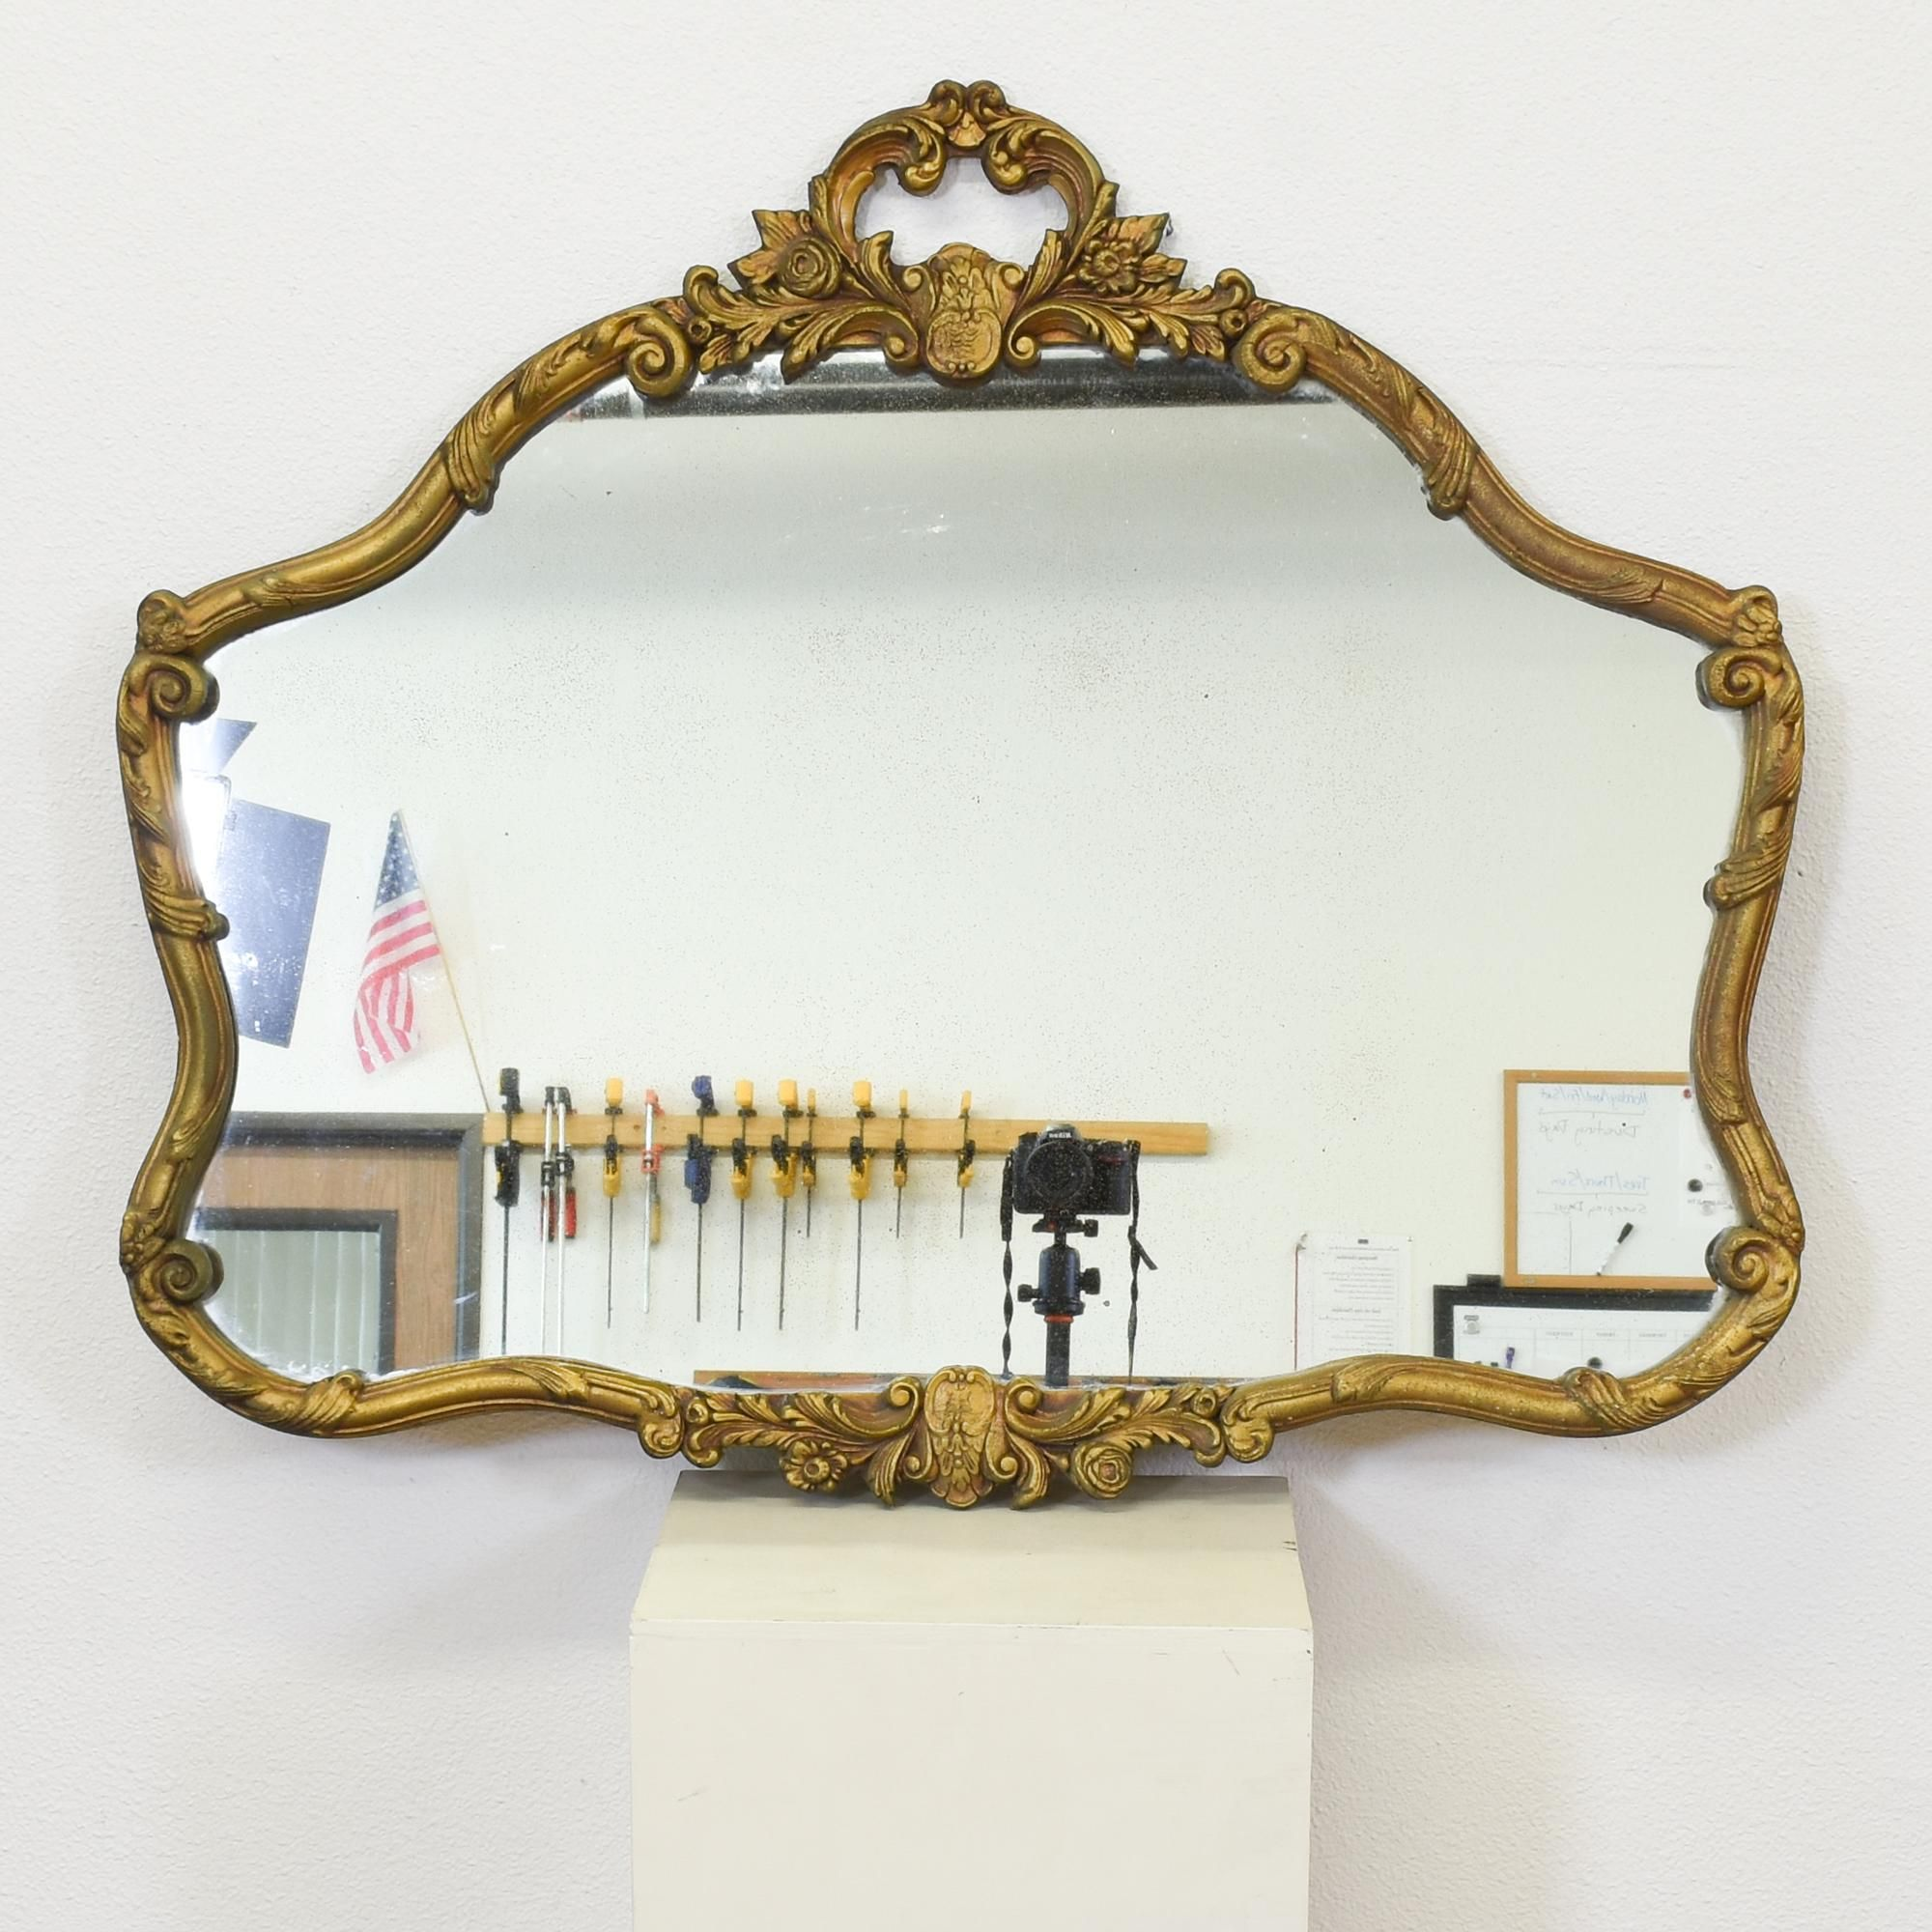 This Antique Mirror Is Featured In A Solid Wood With A Shiny Gold